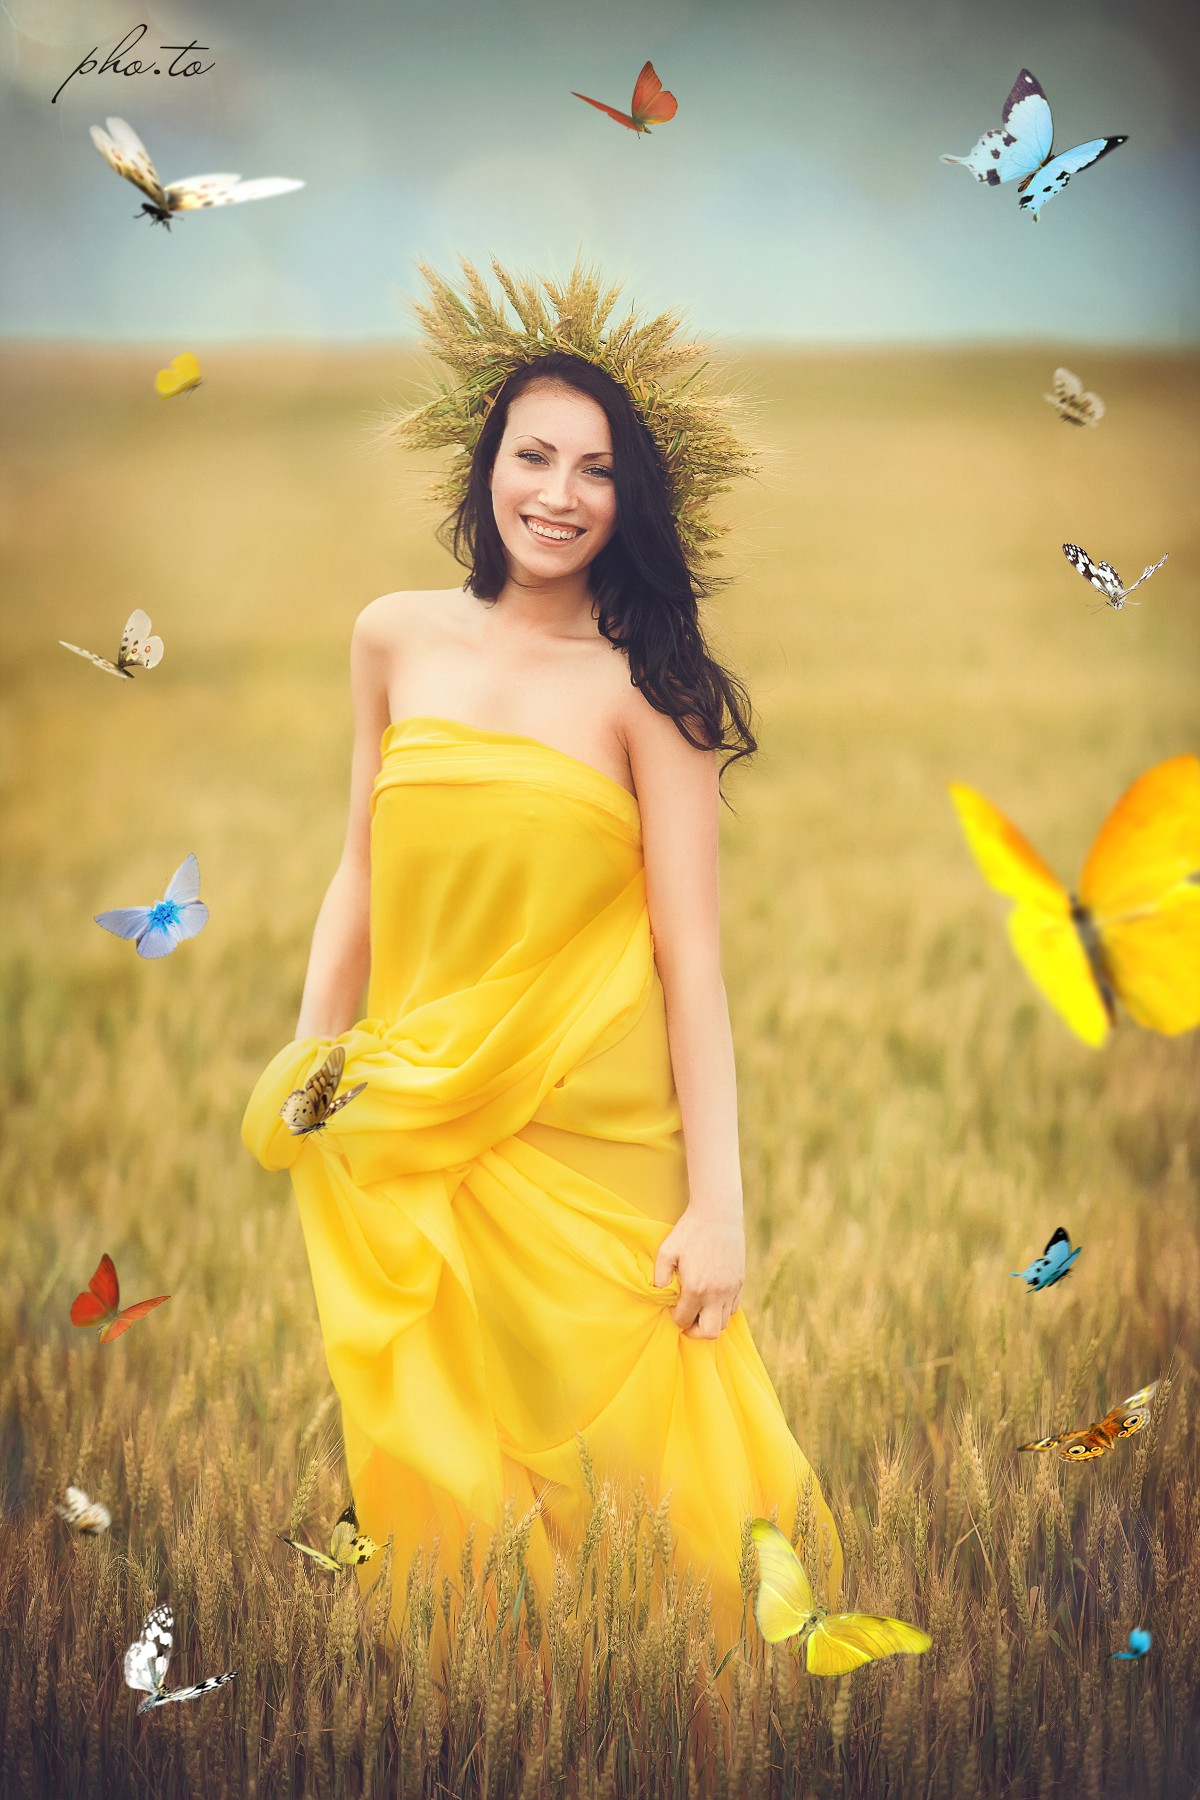 Summer shot of a beautiful girl adorned with butterflies overlay